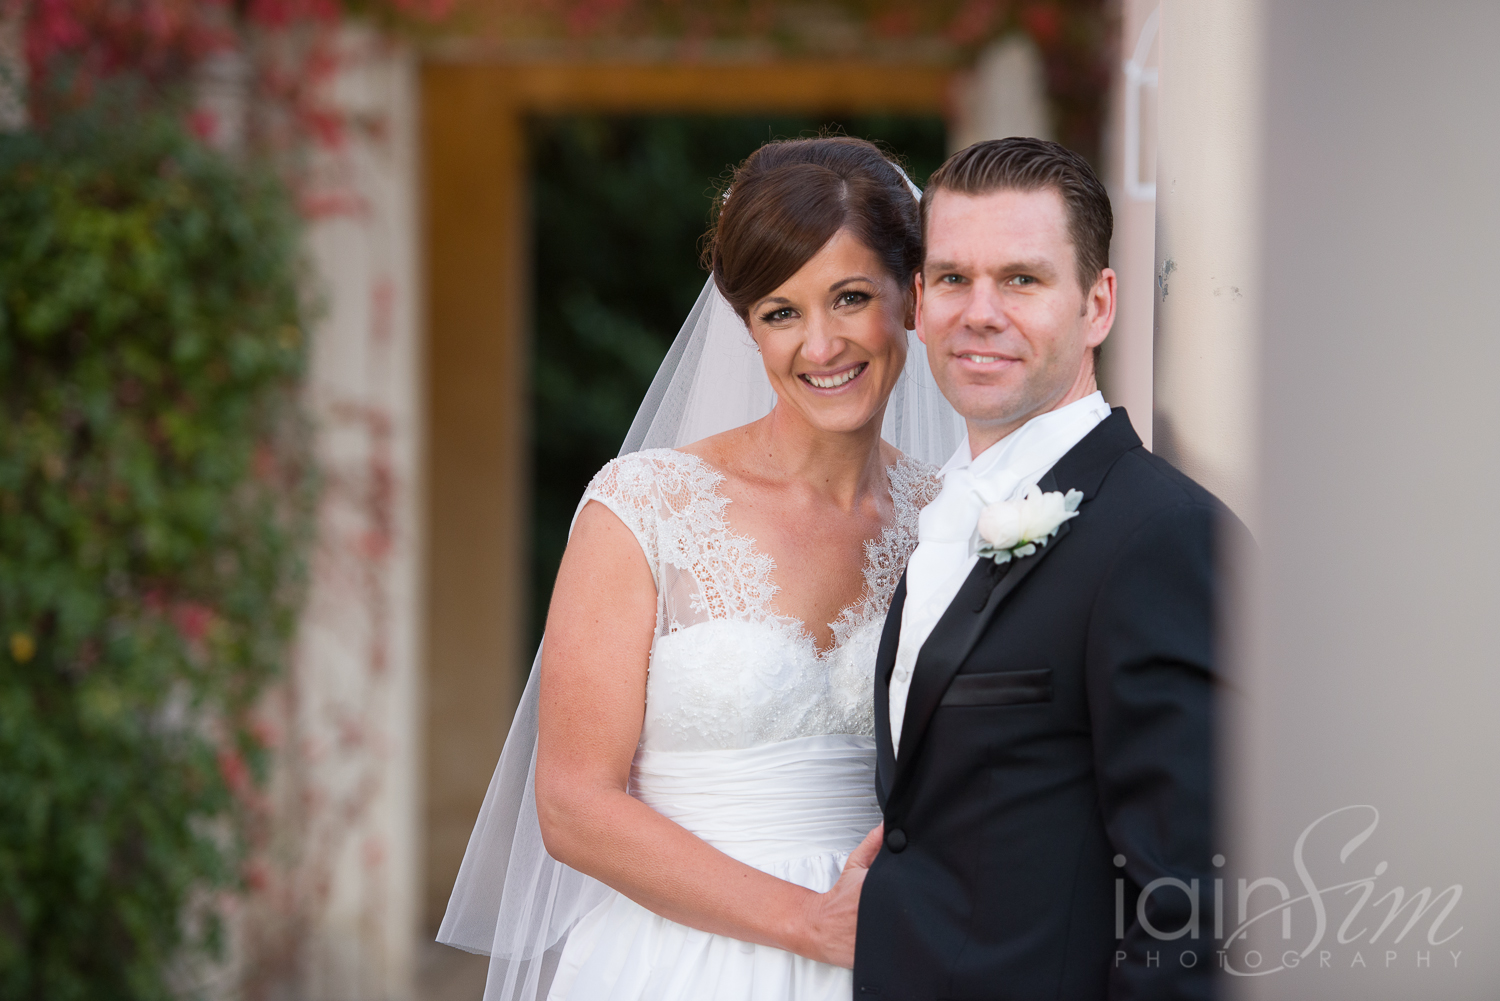 wpid-Katherine-and-Marks-RipponLea-Wedding-by-Iain-Sim-Photography_030.jpg